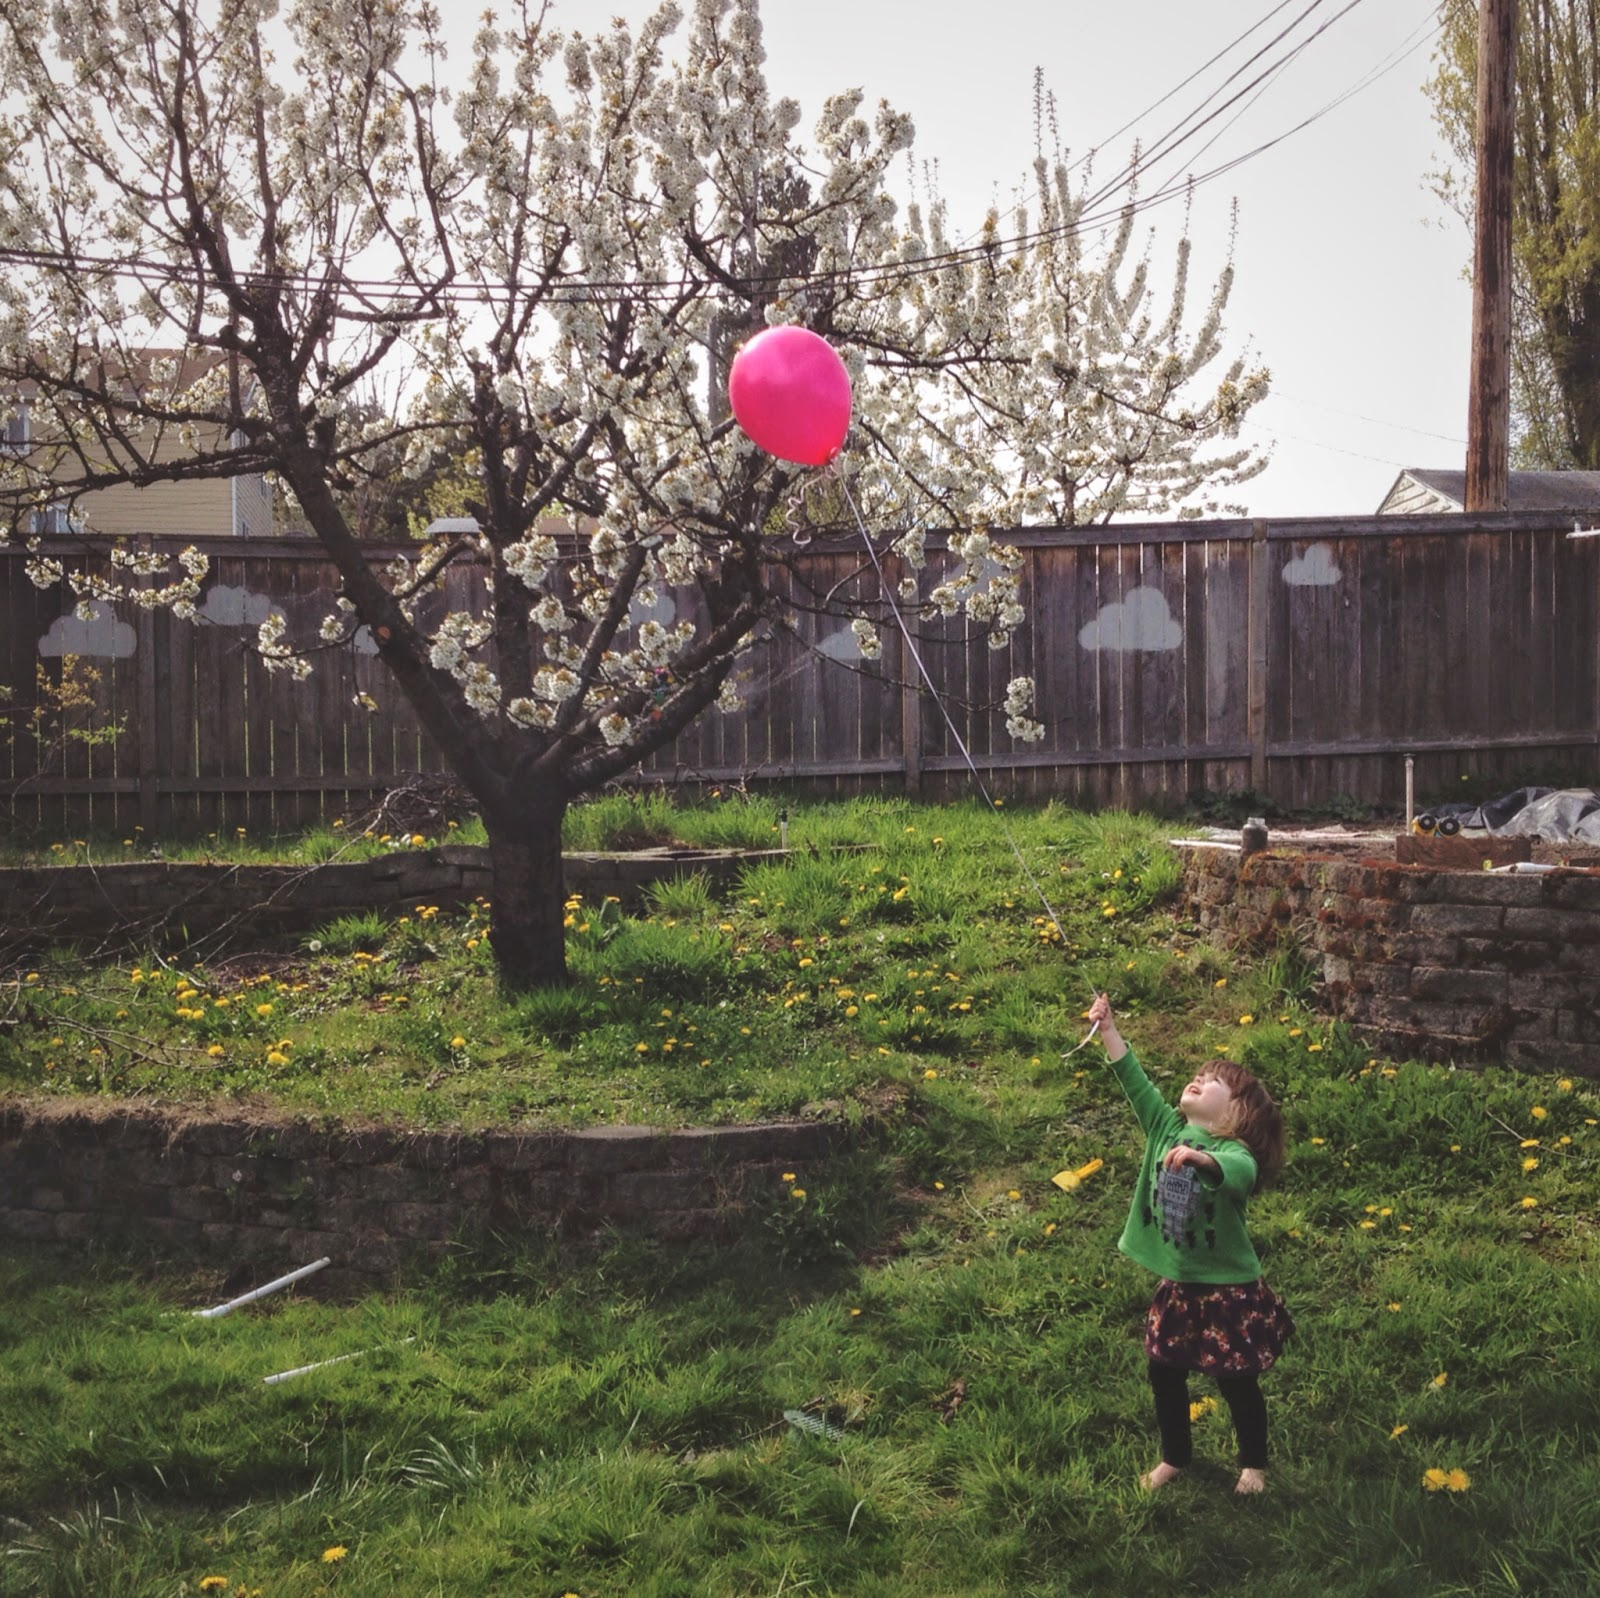 balloon pink lost fly away